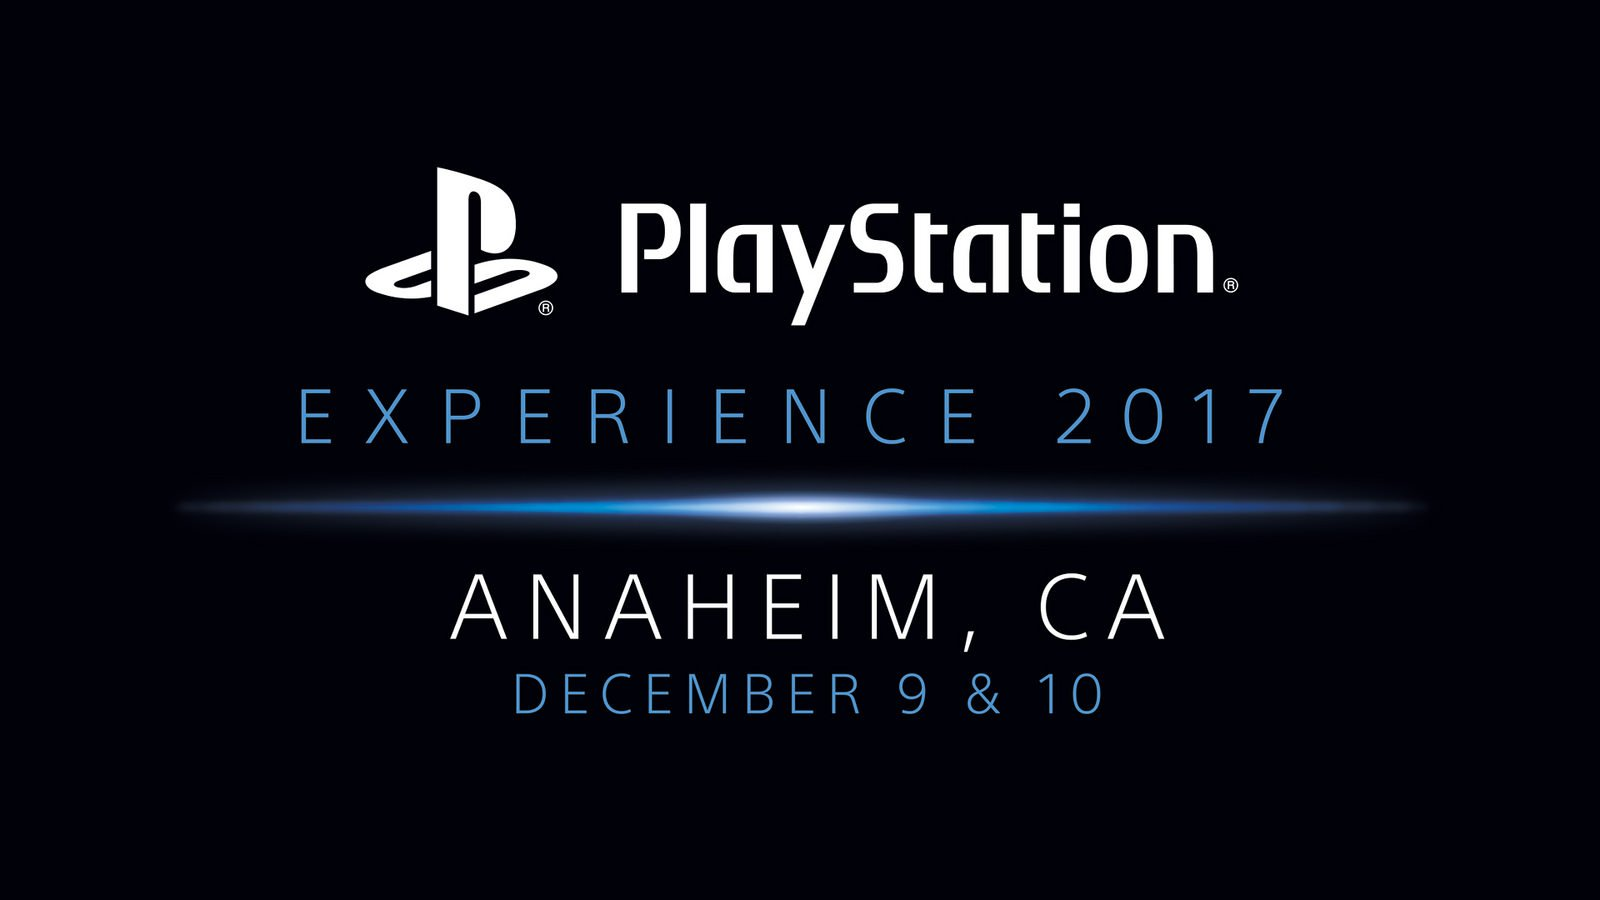 First details on PlayStation Experience 2017, coming to Anaheim December 9 and 10: https://t.co/aYEXVf973i https://t.co/ncrR2fMU91